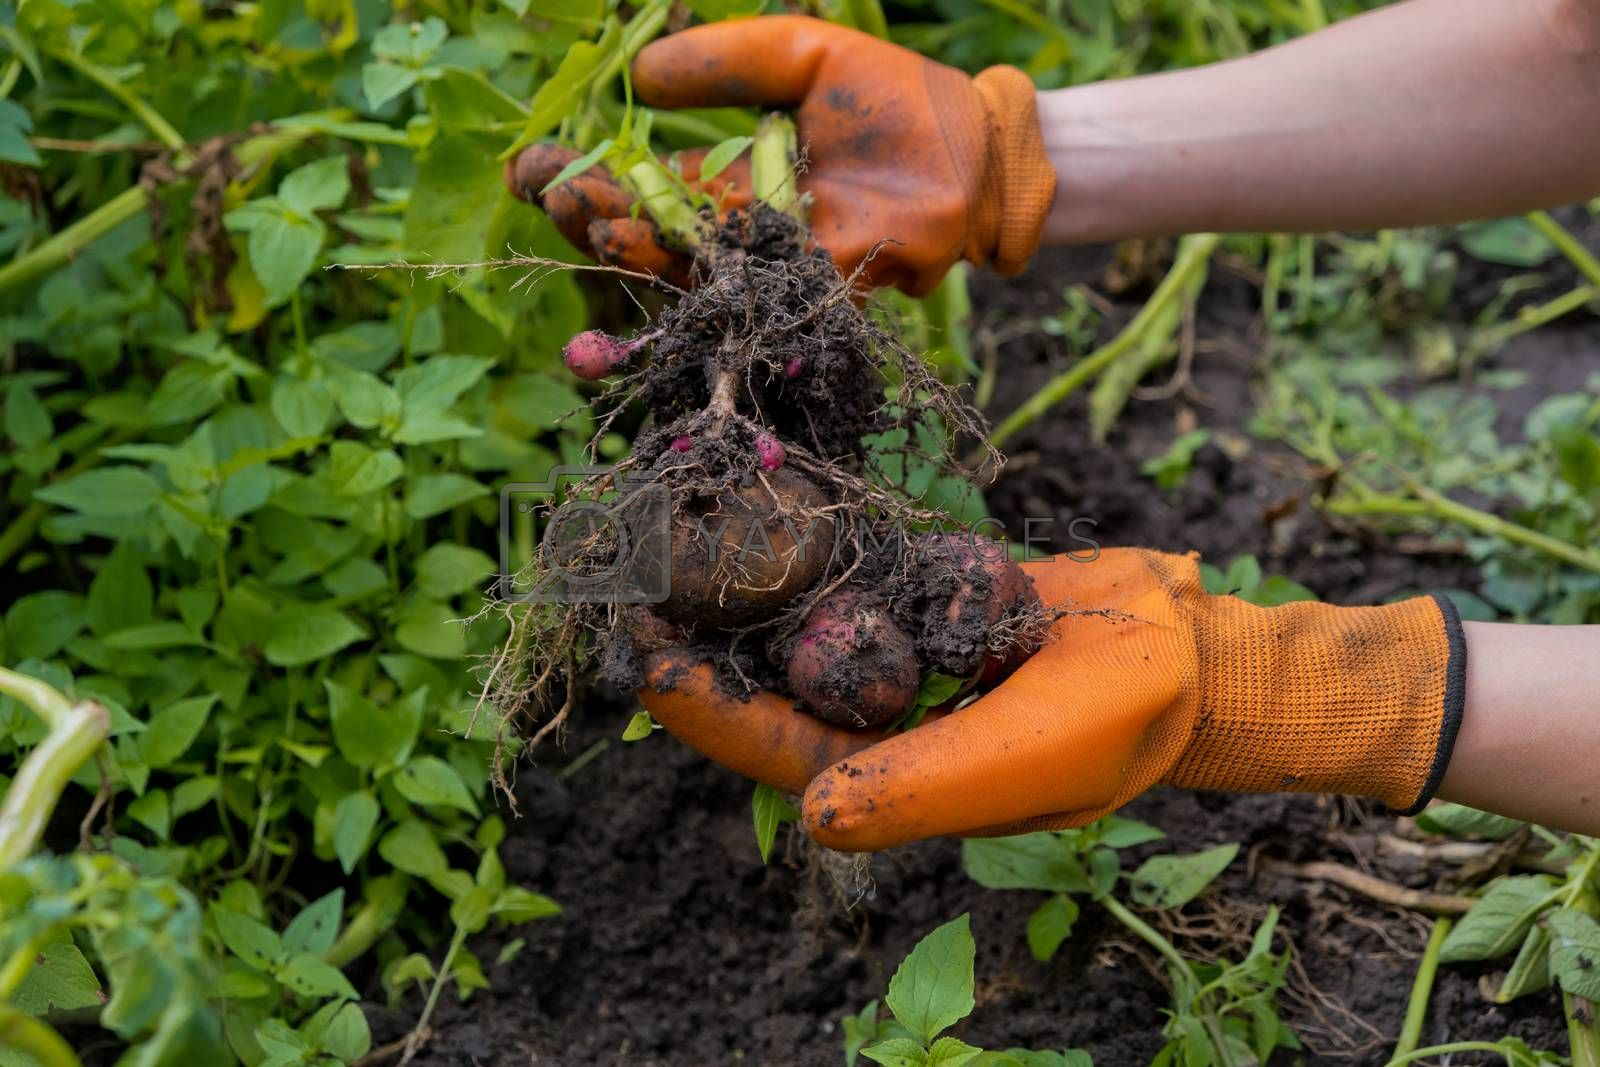 Collection of fresh raw potatoes. A farmer in orange gloves harvests potatoes.